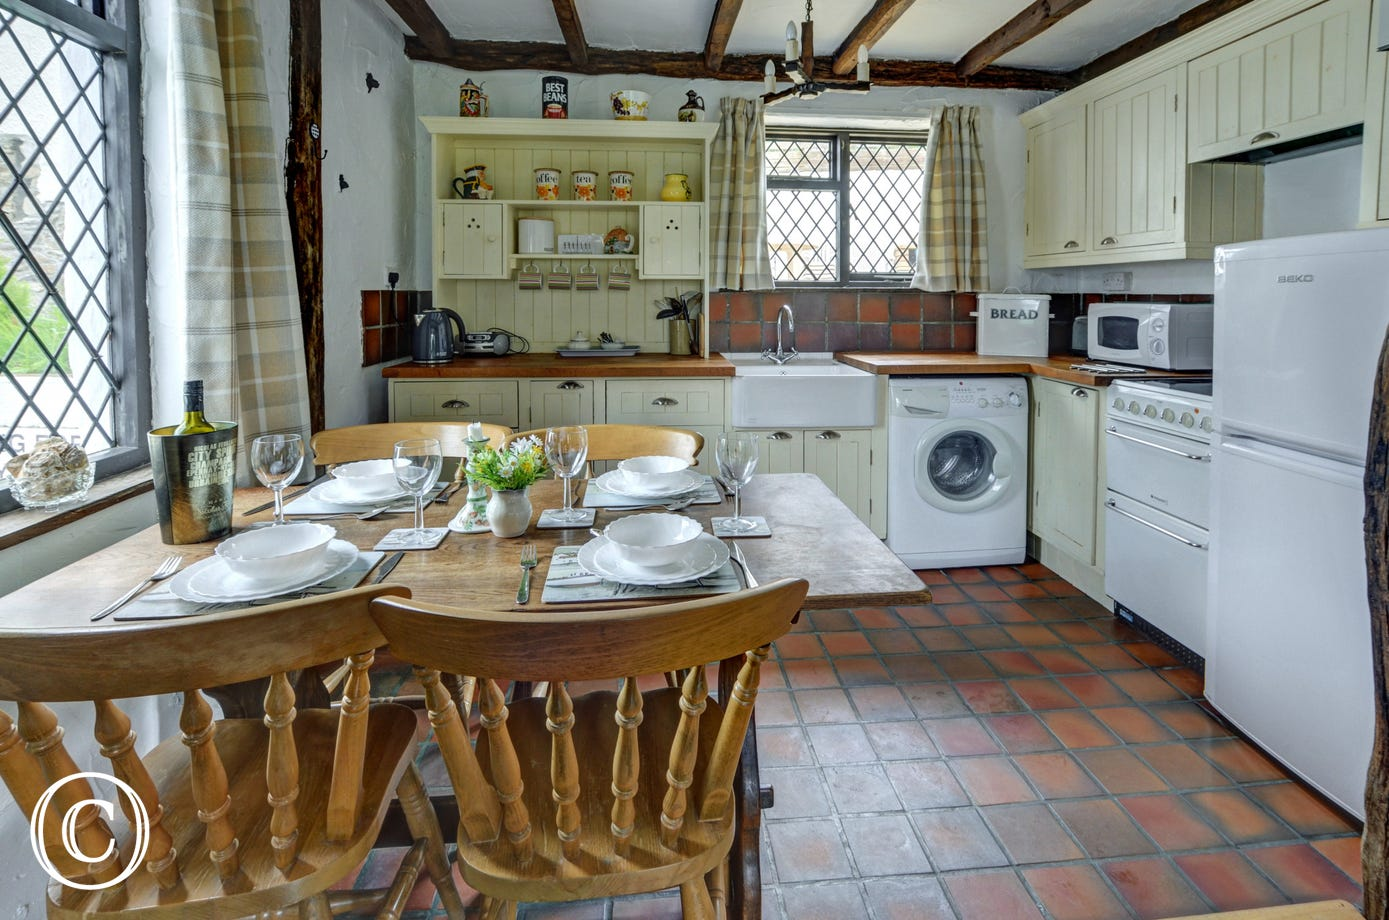 The kitchen is well equipped and has a dining table with space for four people